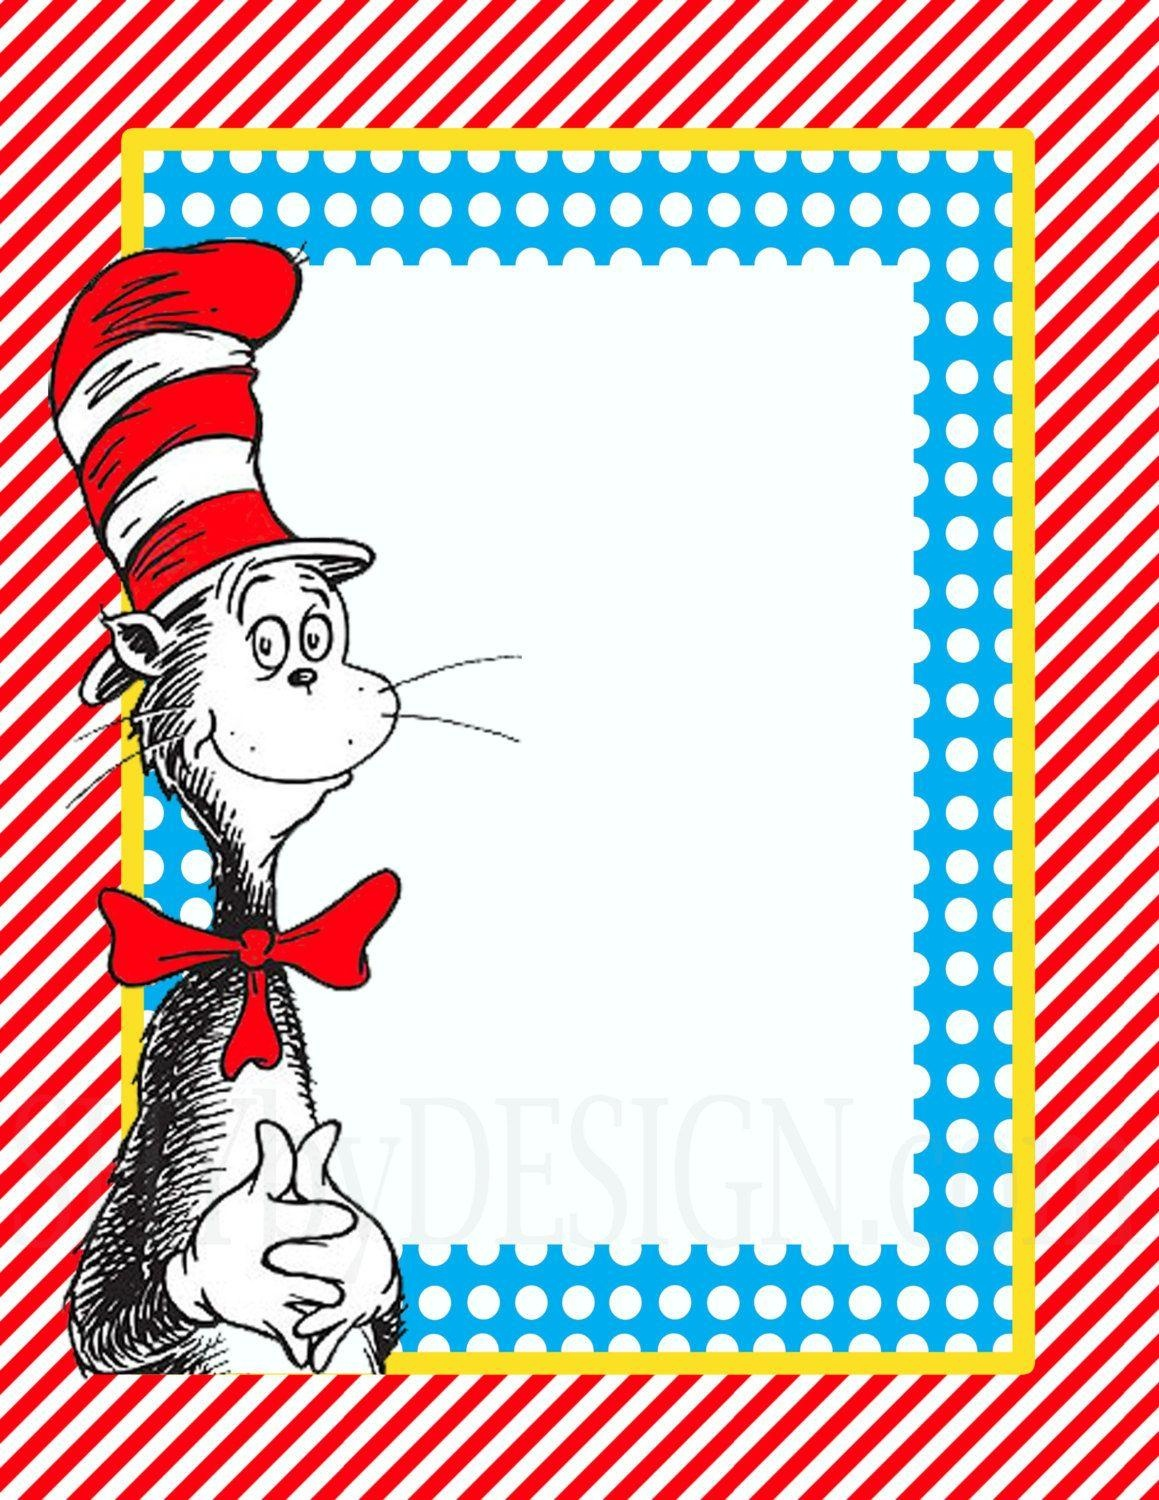 Dr Seuss Border Template - Dr Seuss Free Printable Templates